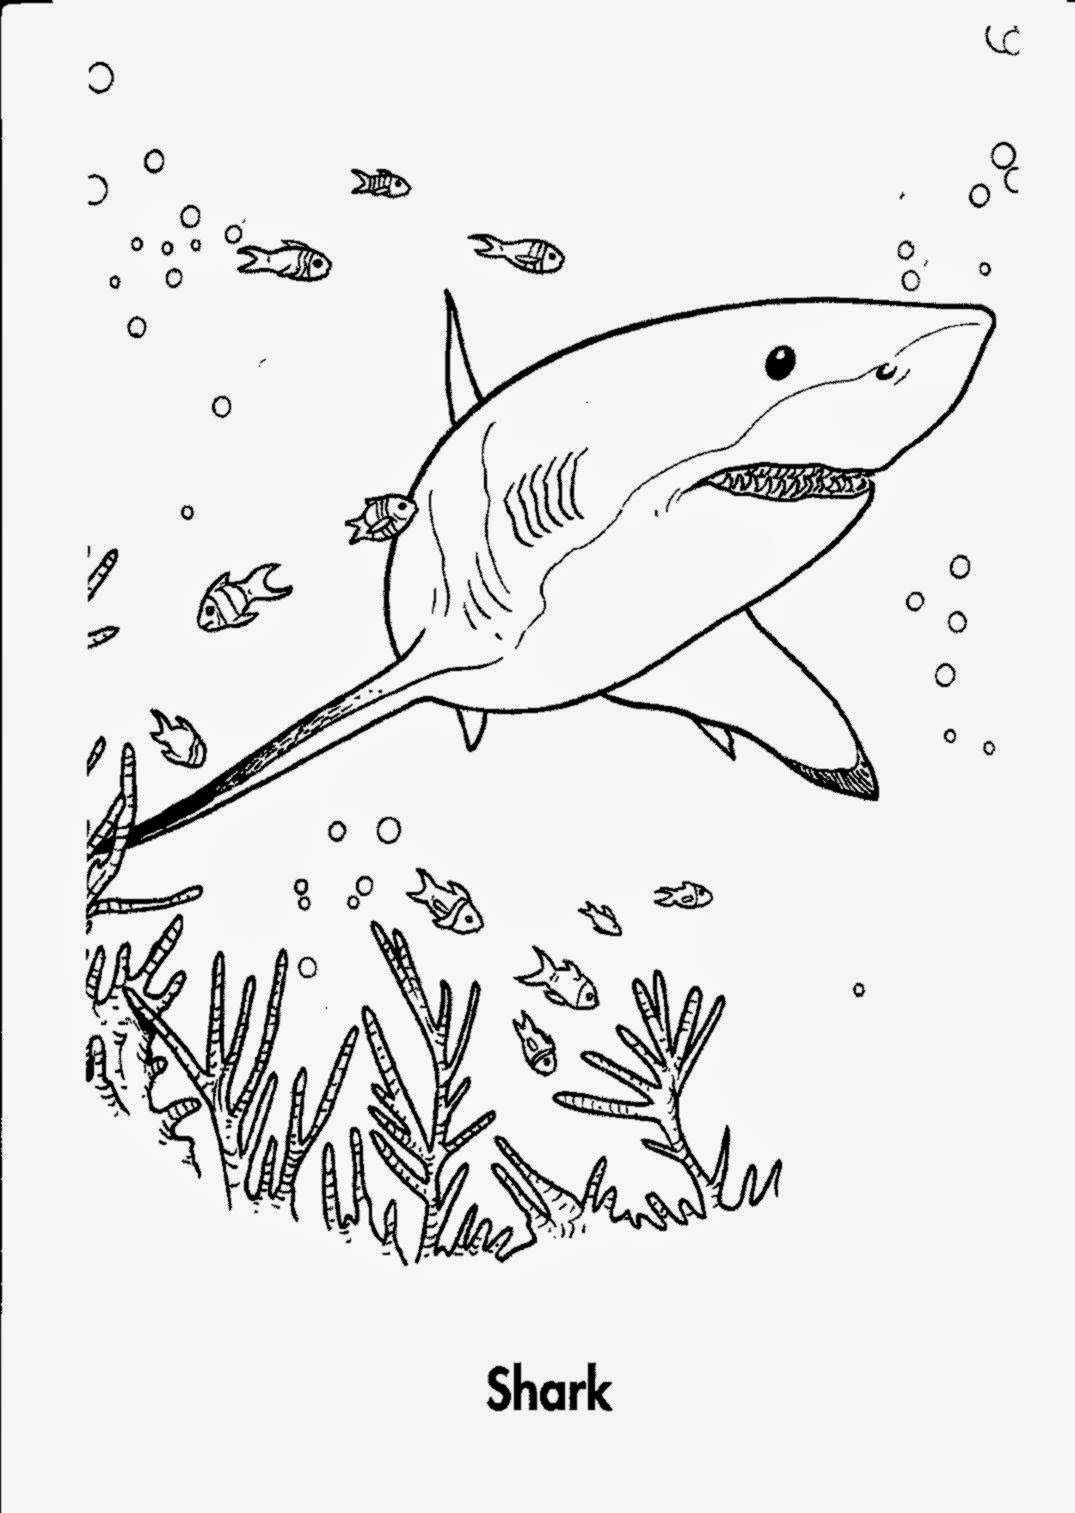 tiger shark coloring pages - coloring pictures of sharks free coloring pictures